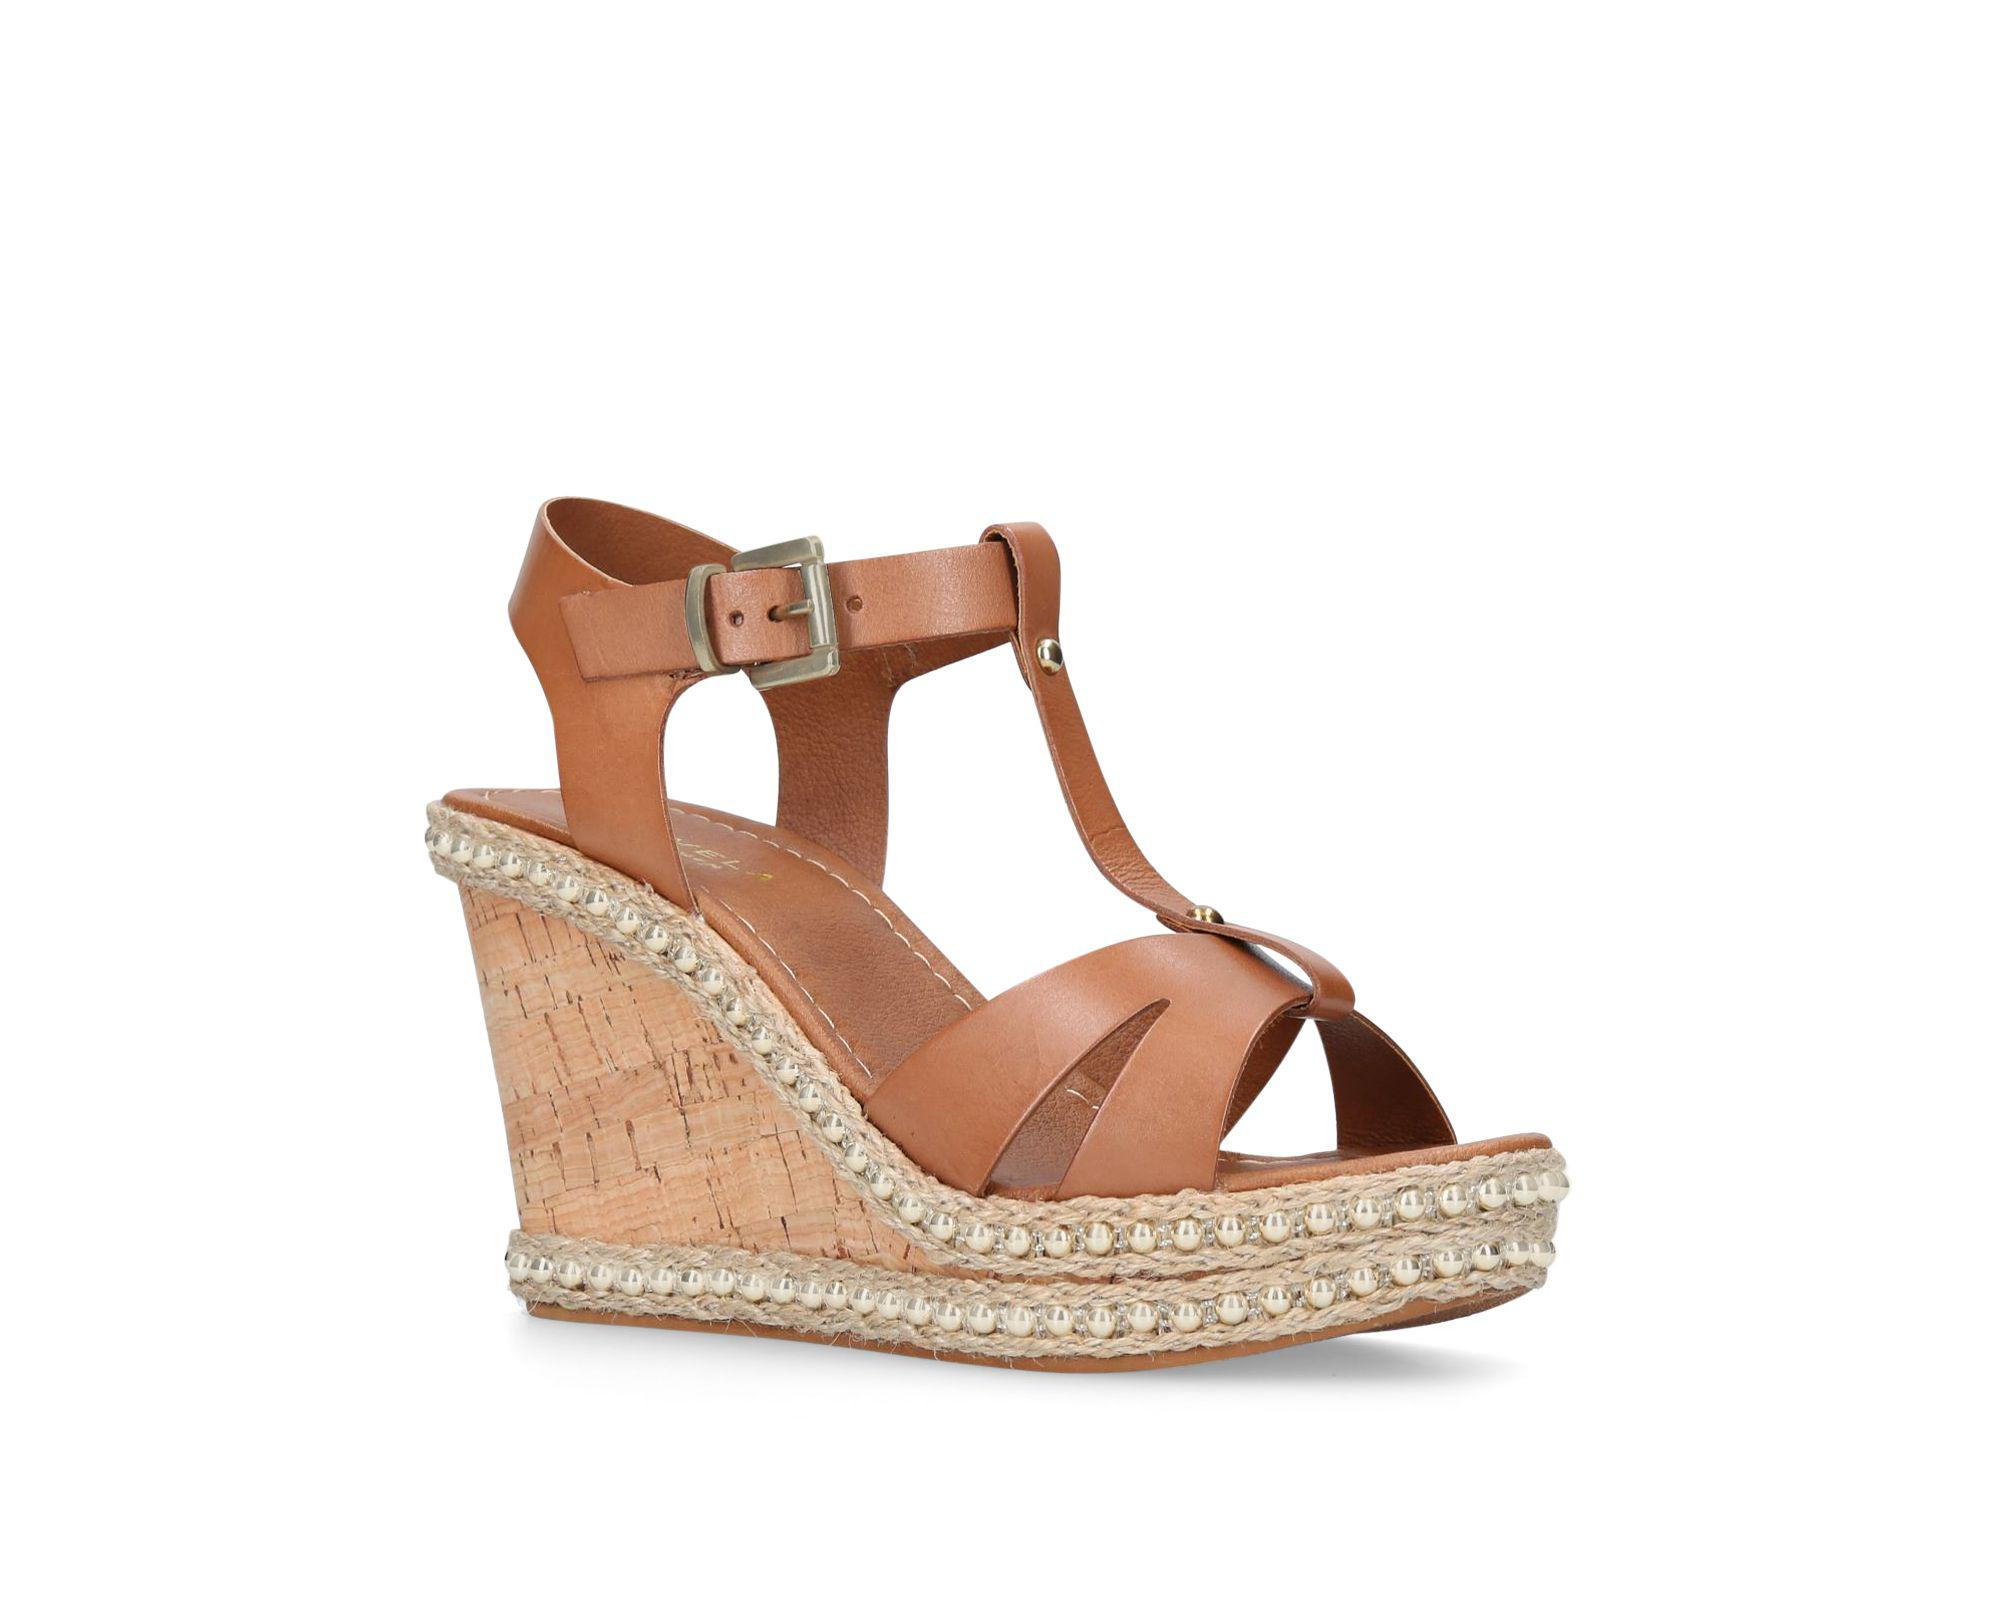 90a296fb6700 Carvela Kurt Geiger Karoline T-bar Wedge Heel Sandals in Brown ...